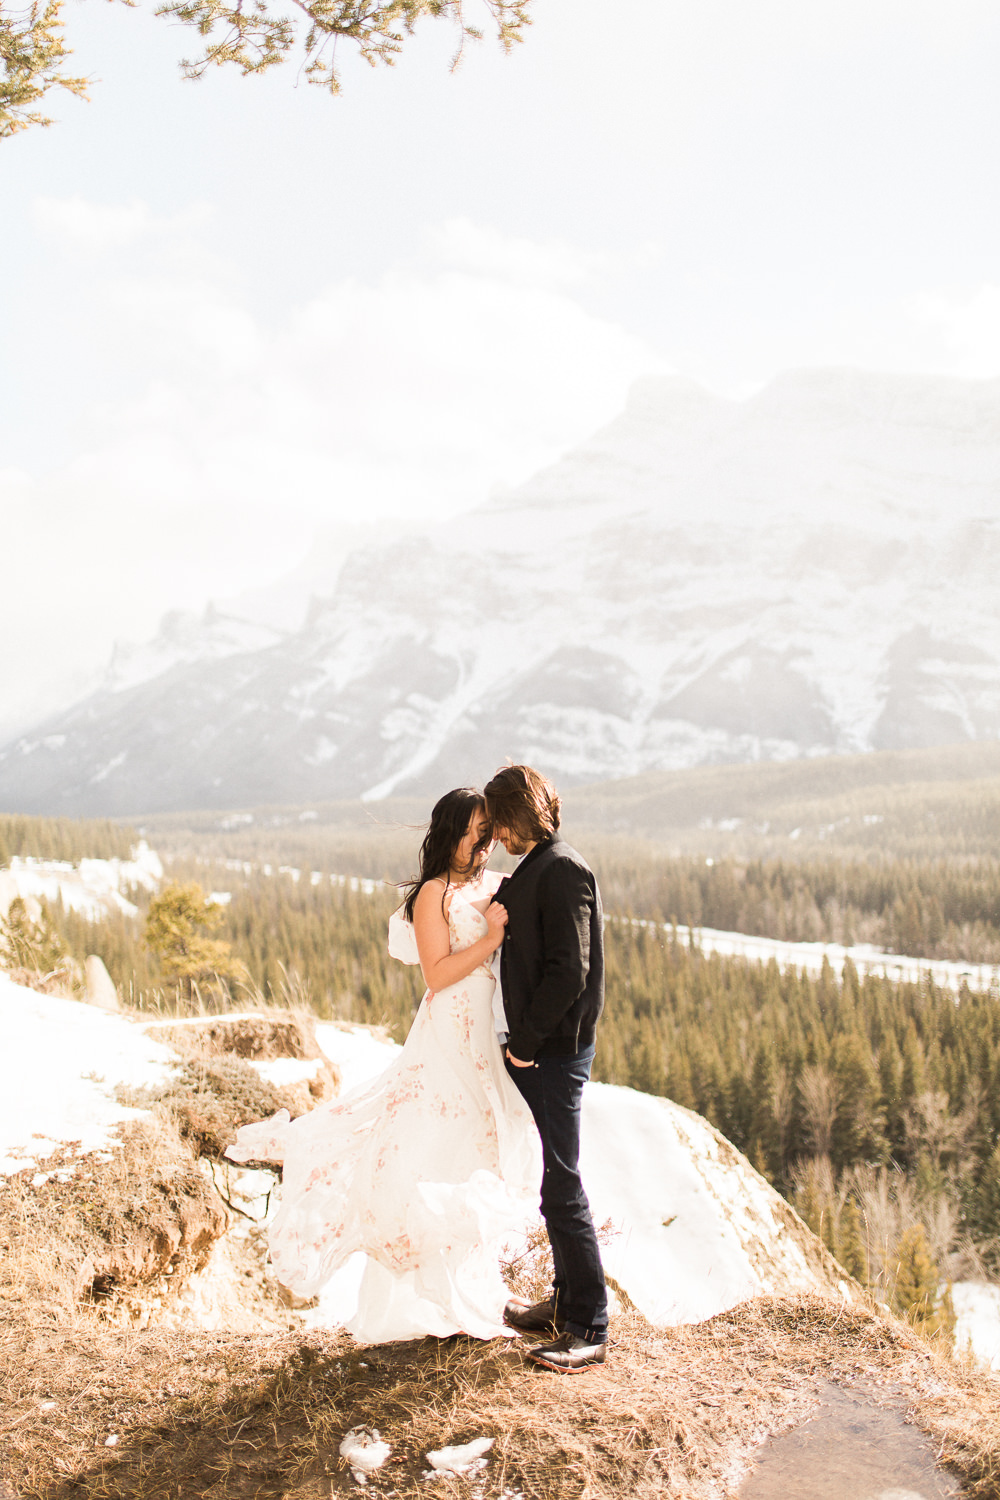 Banff-engagement-session-18.jpg